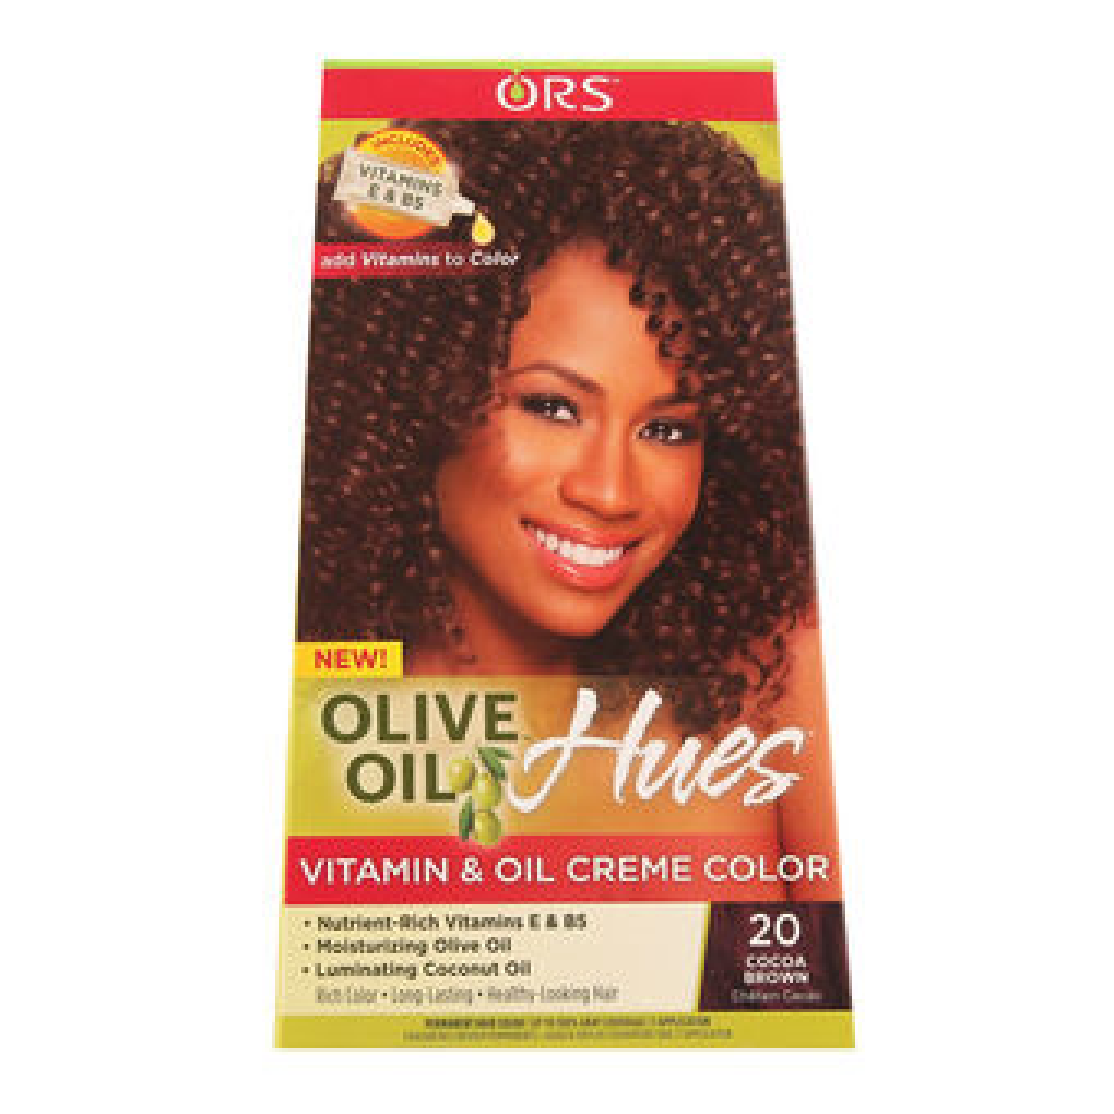 ORS-Olive-Oil-Hues-Vitamin-and-Oil-Creme-Color-20-Cocoa-Brown-0079762